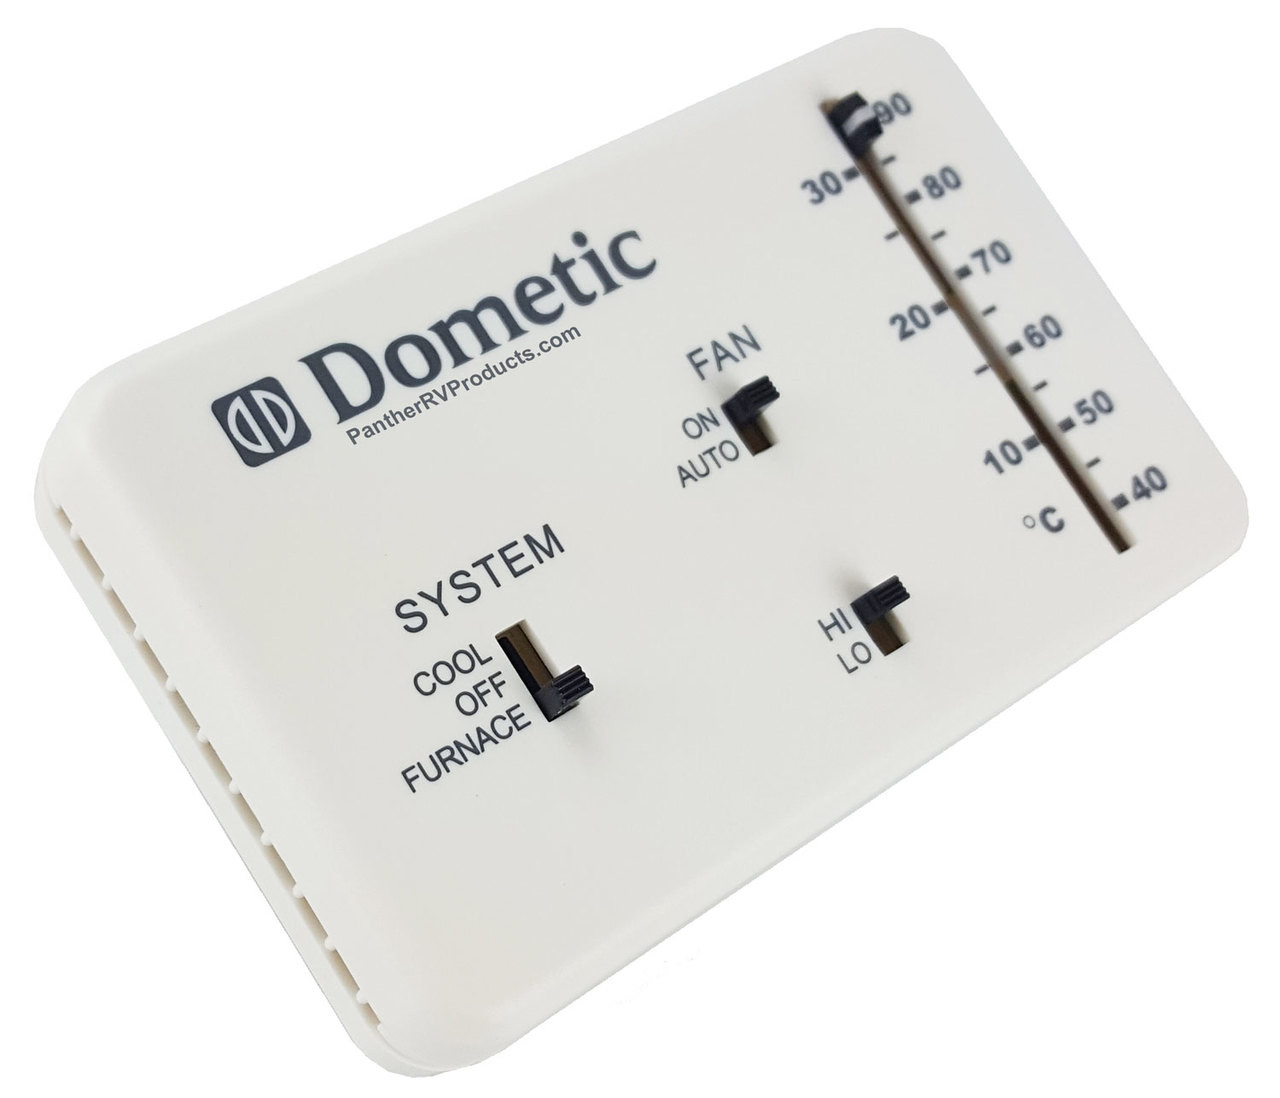 medium resolution of dometic 3106995 032 thermostat 6 wire analog control heat cool duo temp thermostat 7 wire diagram